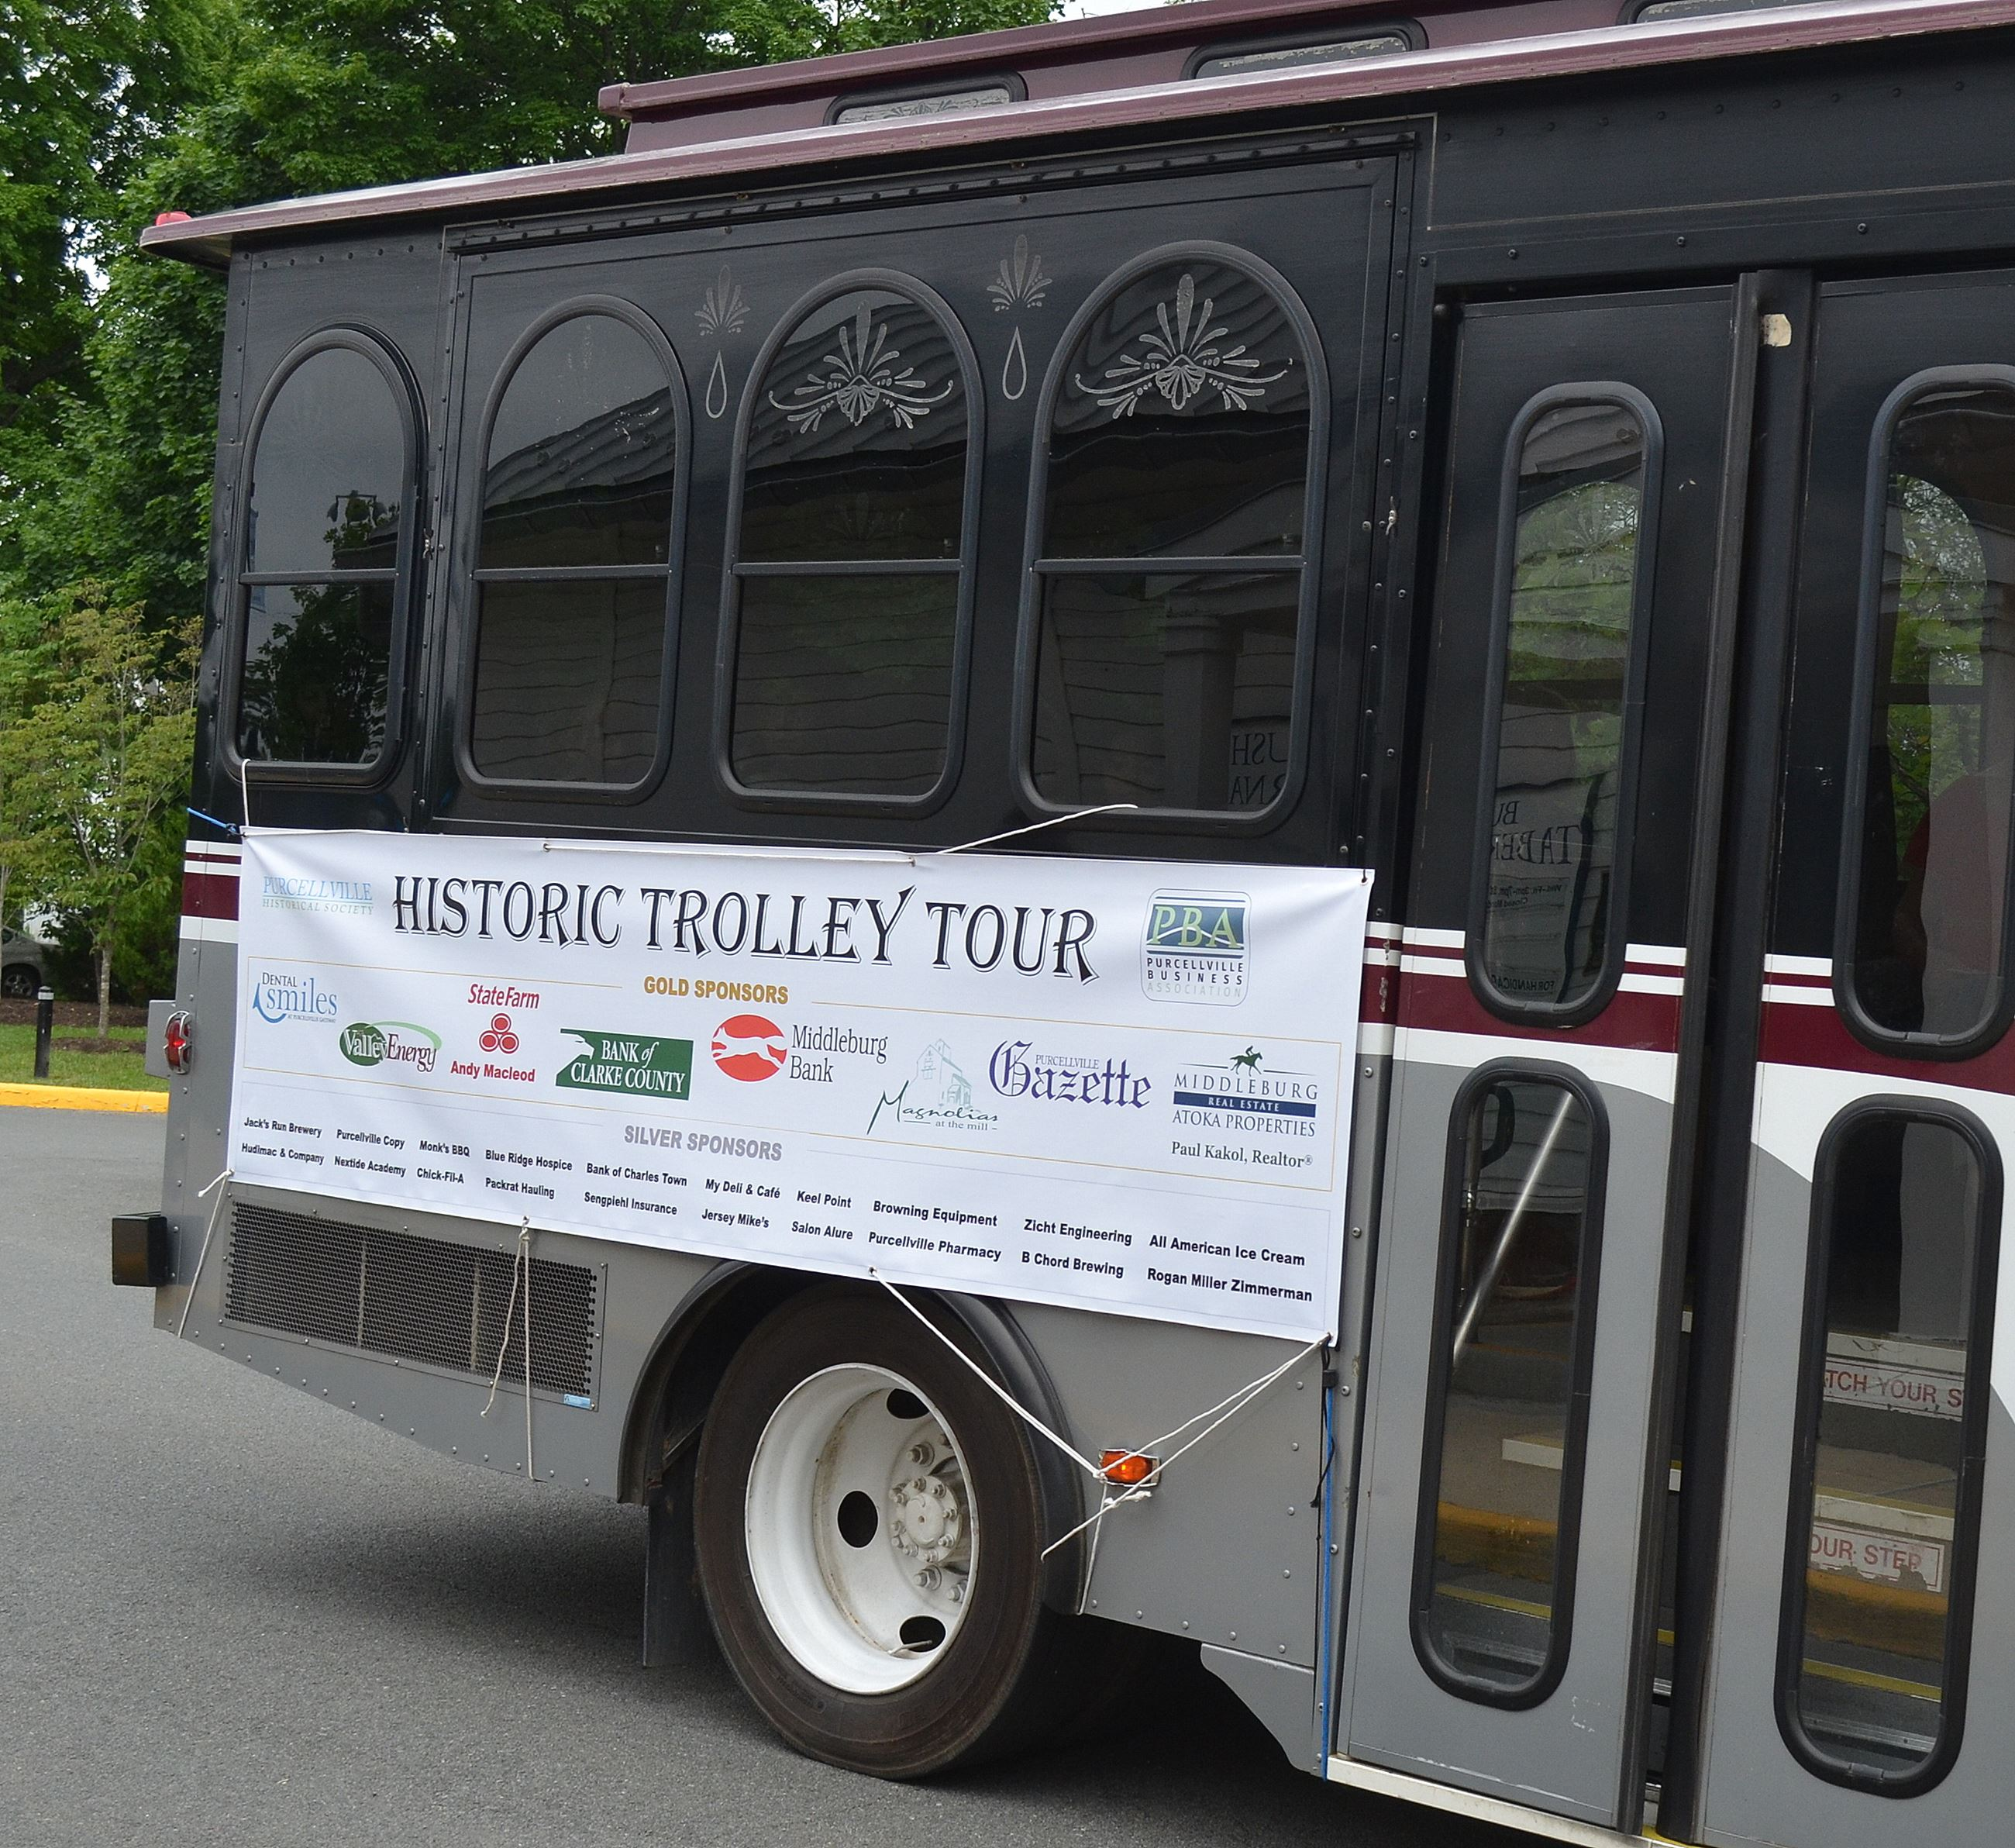 Trolley, trolley tour sign